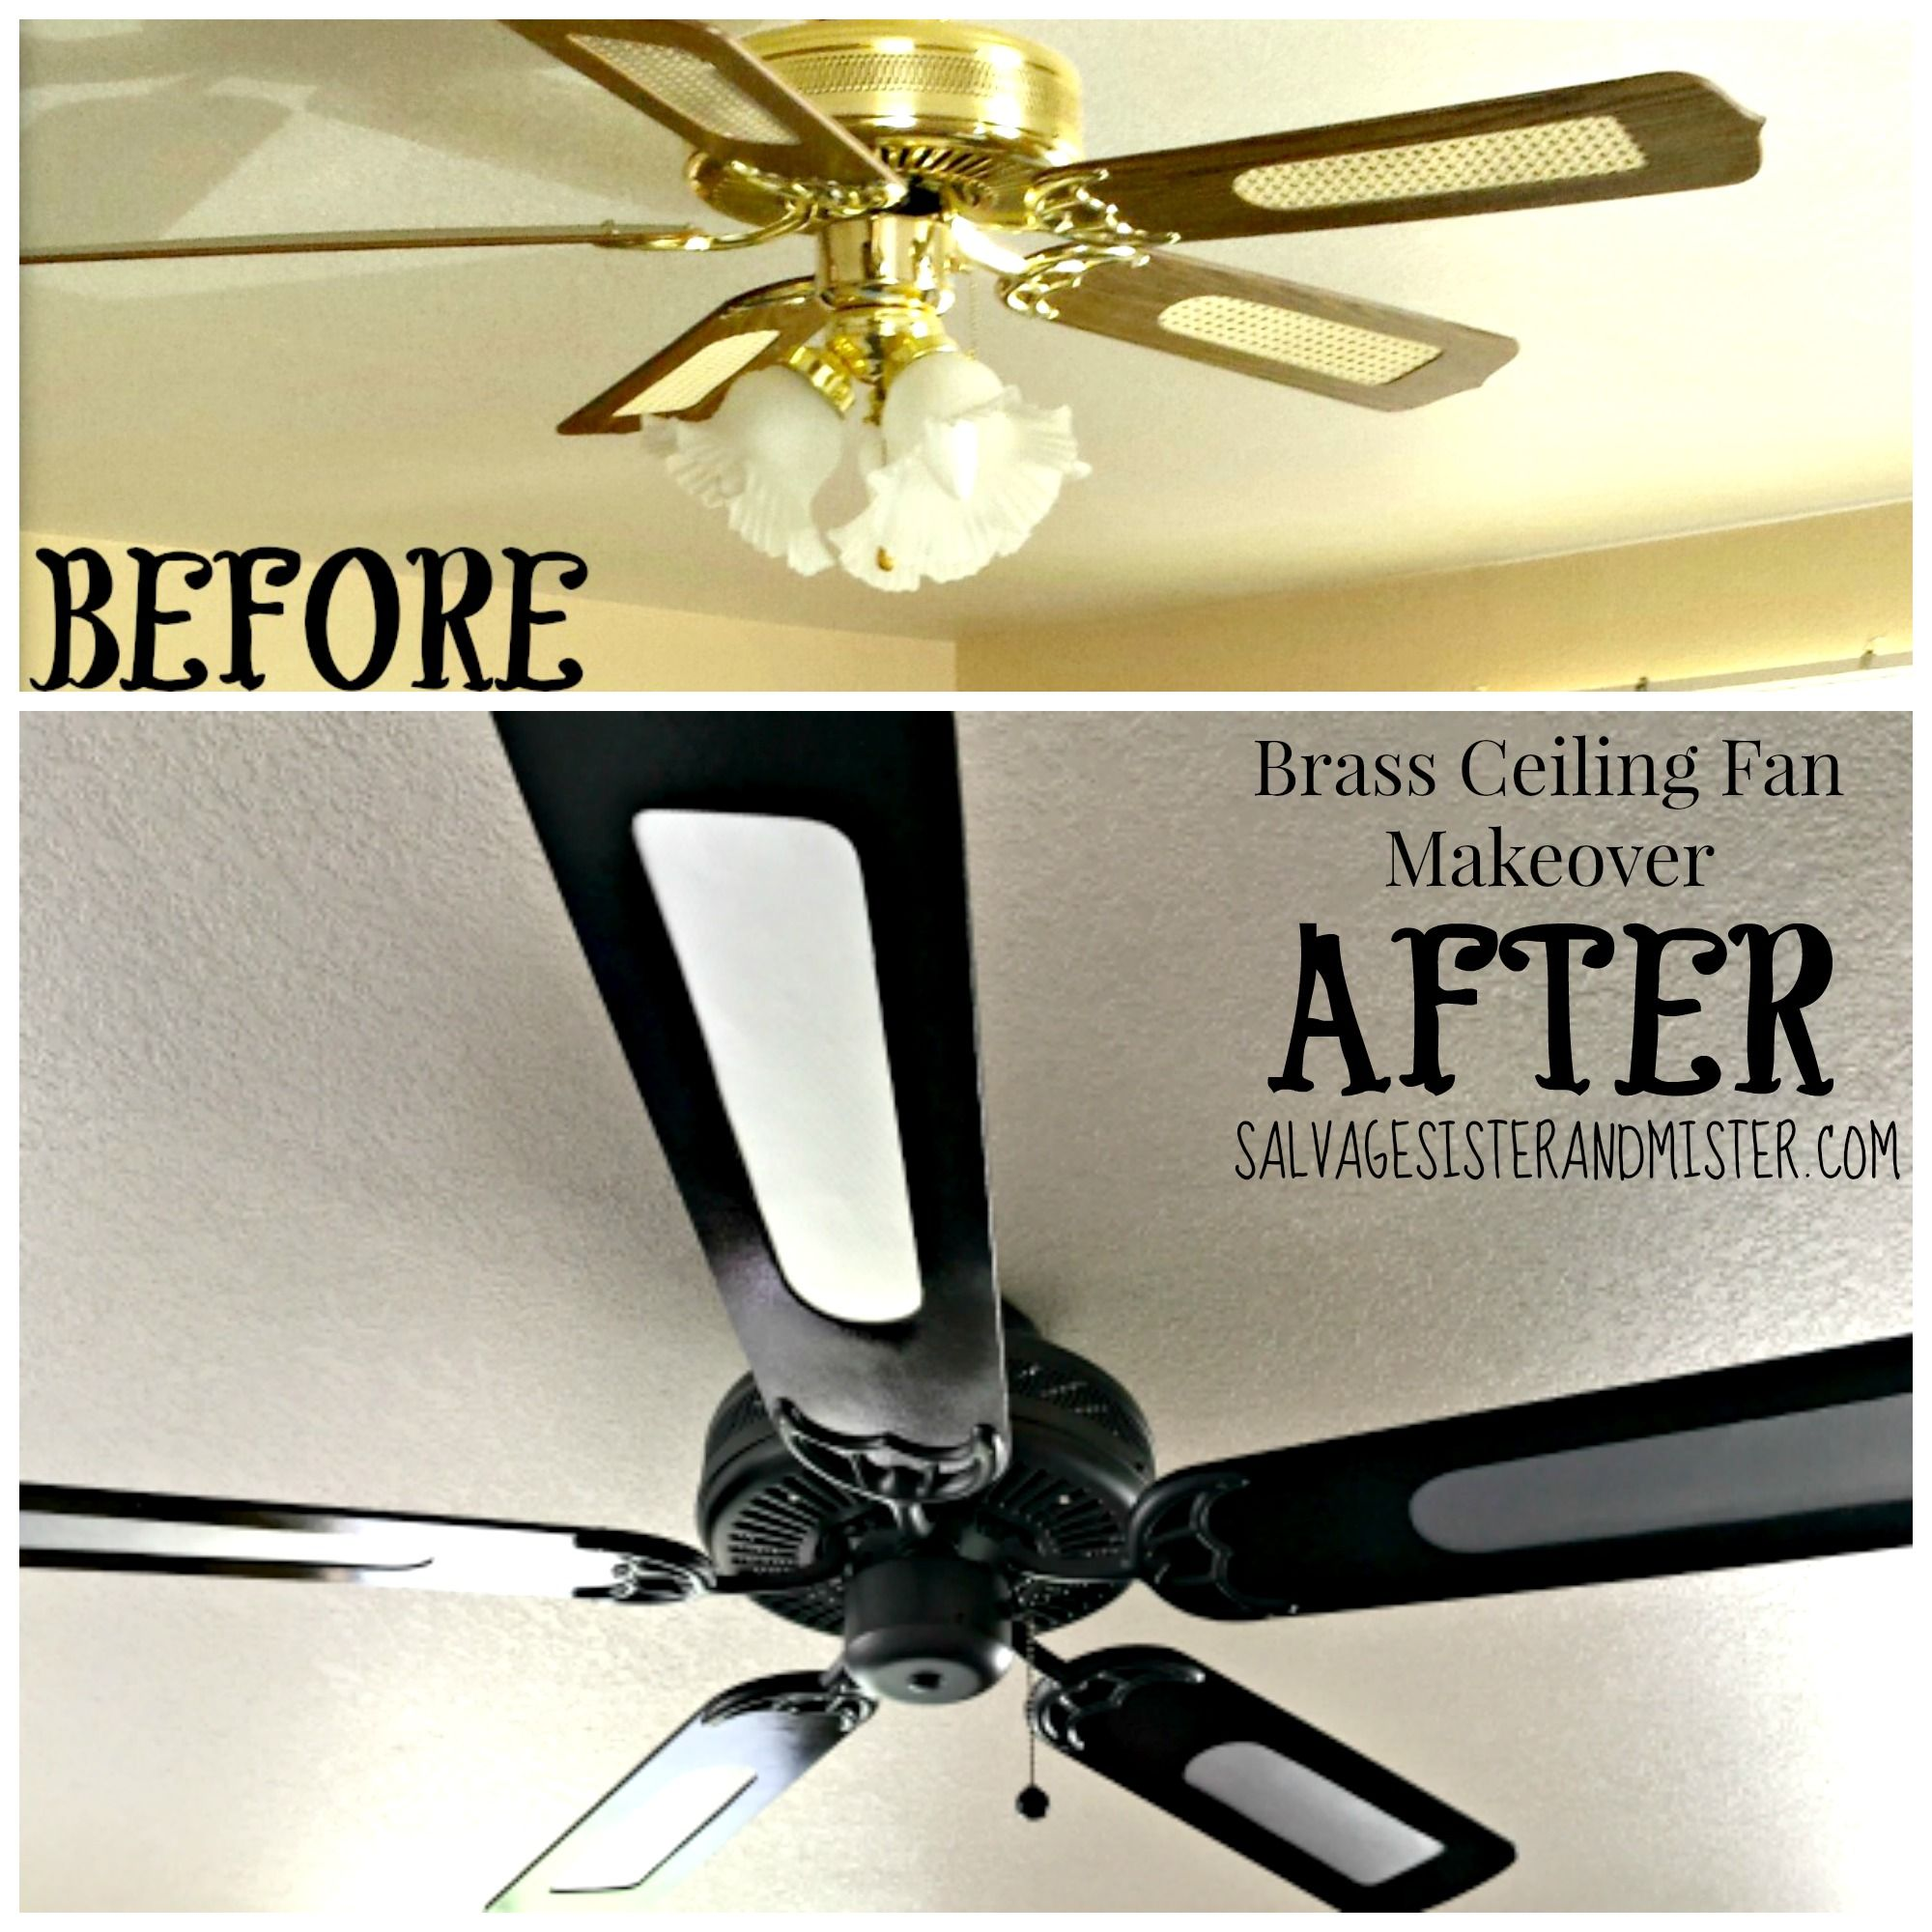 Brass Ceiling Fan Makeover